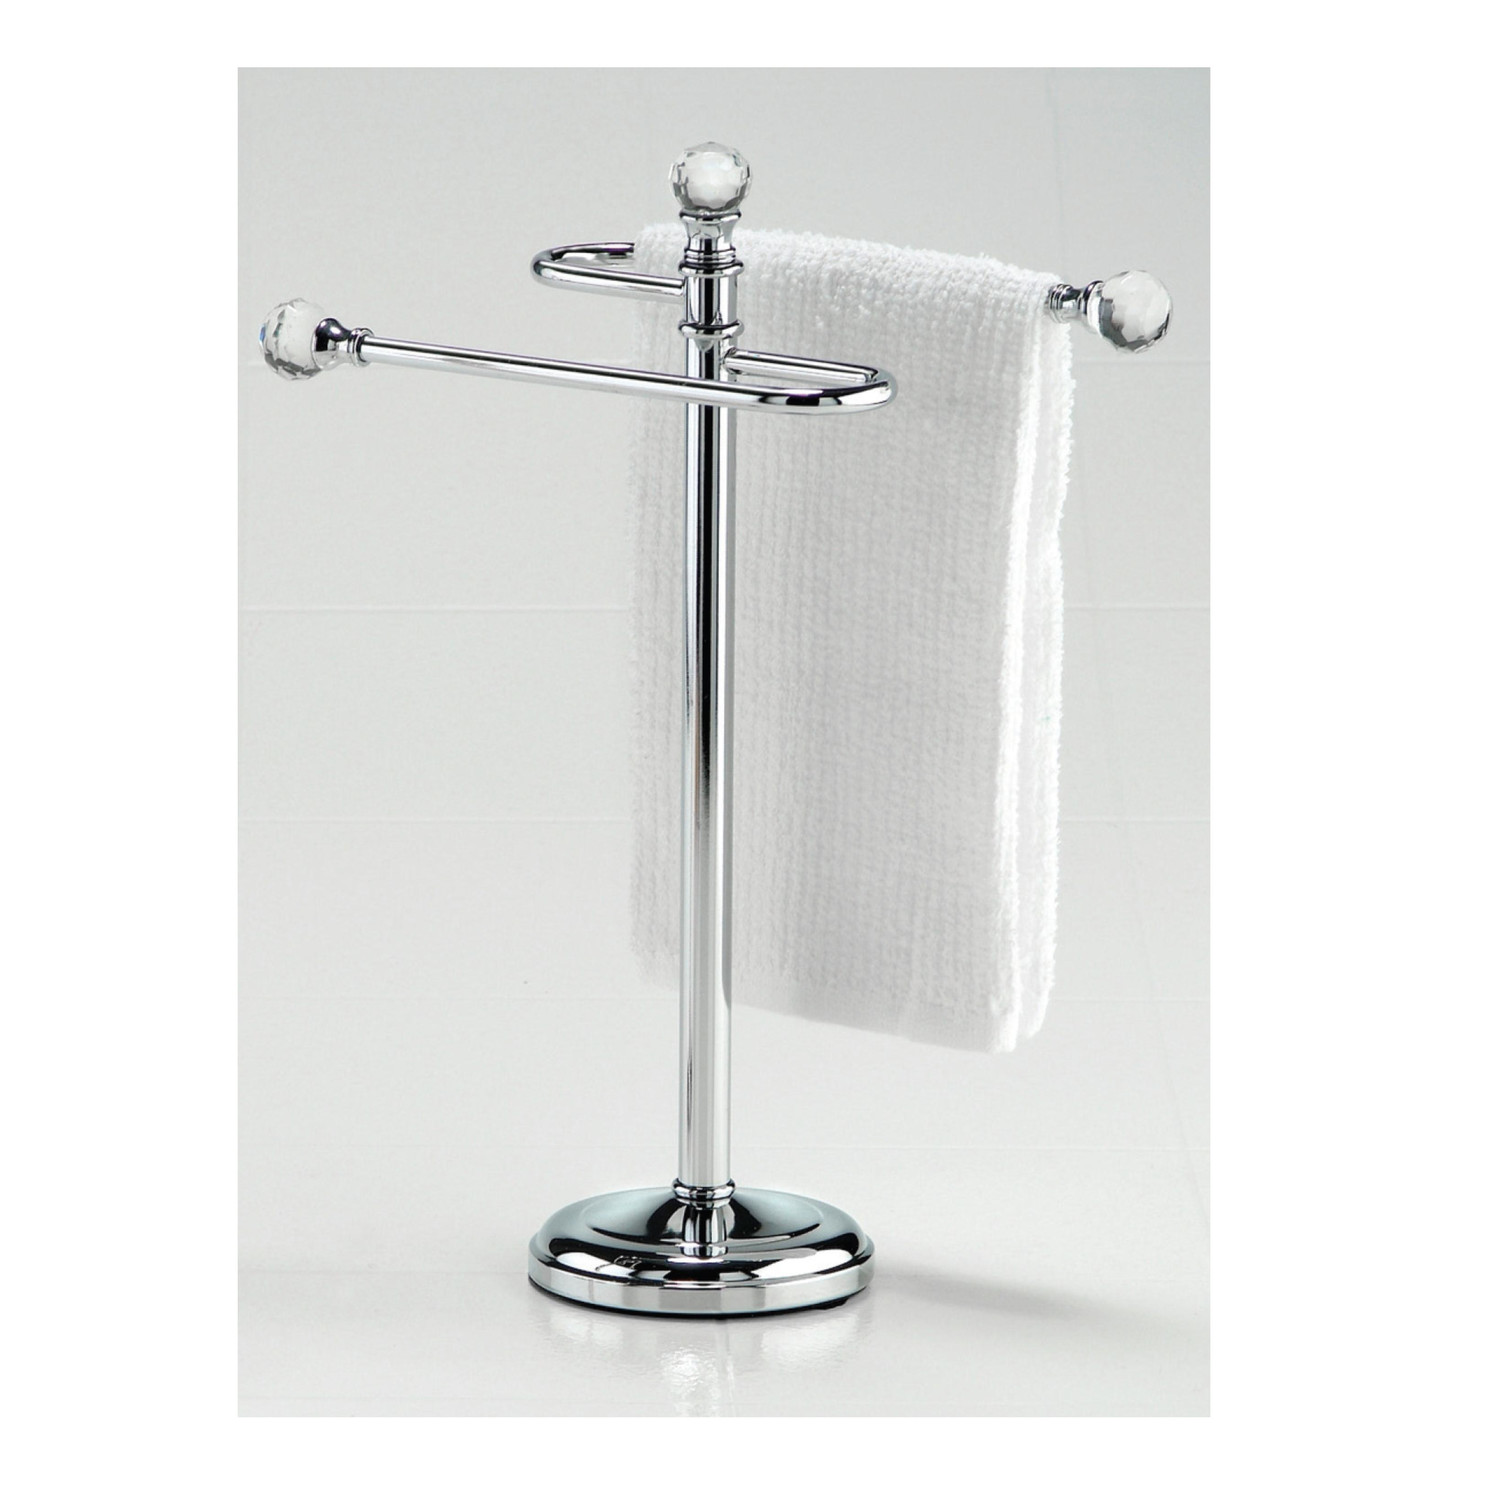 countertop hand towel stand. Plain Stand Hand Towel Stand Made Of Chrome With Two Units Rail Inside Countertop Towel Stand W